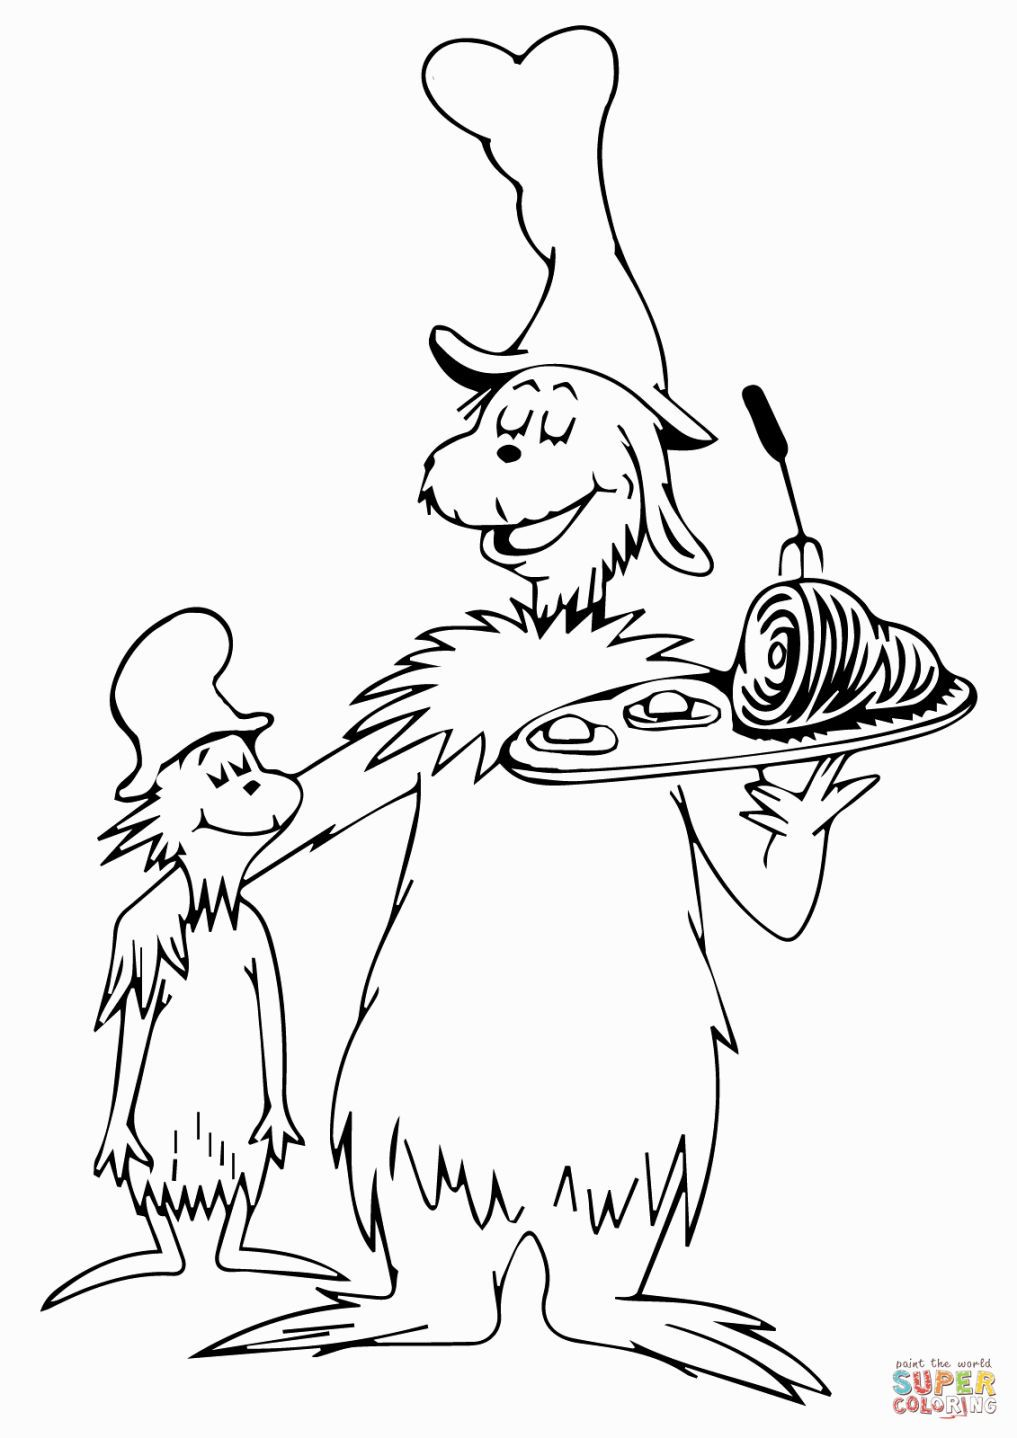 dr seuss coloring pages green eggs and ham coloring sheets dr seuss coloring pages pinterest ham seuss eggs green coloring and pages dr